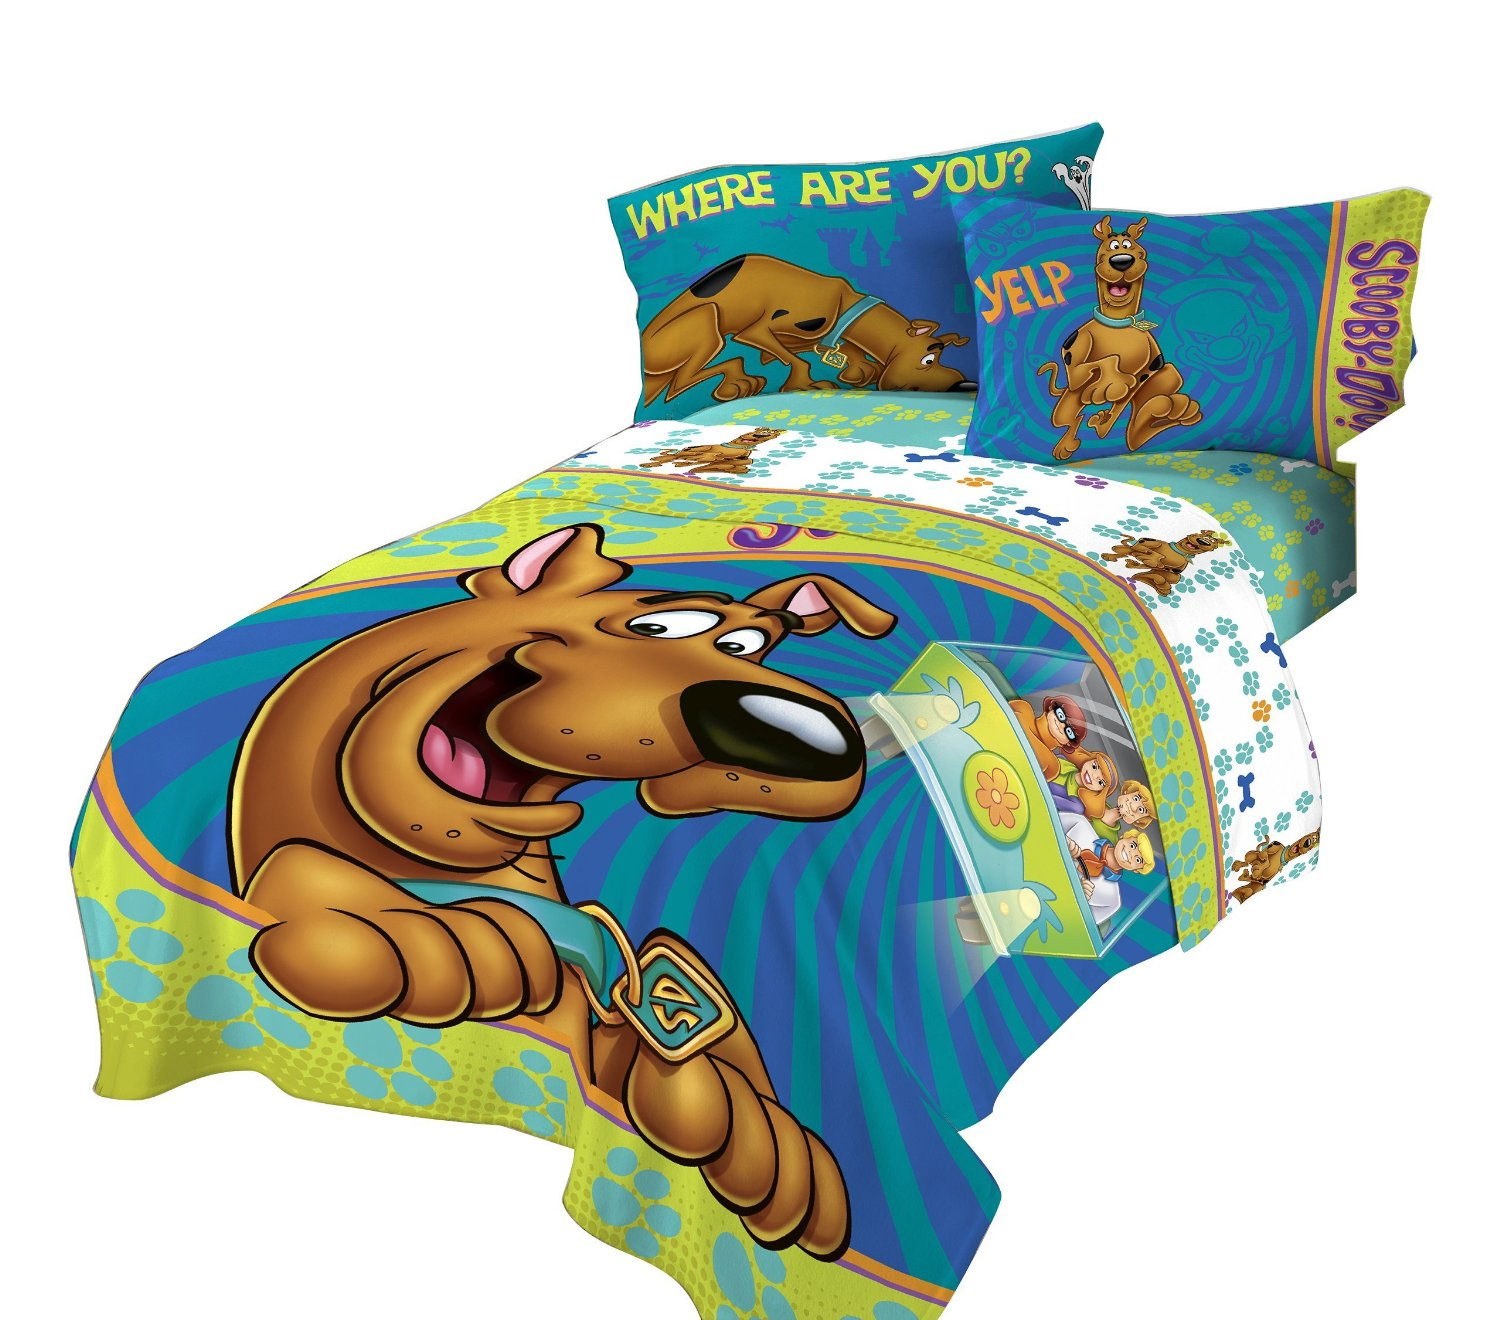 pics photos scooby doo kid s fun bed twin size bedding sheet set new